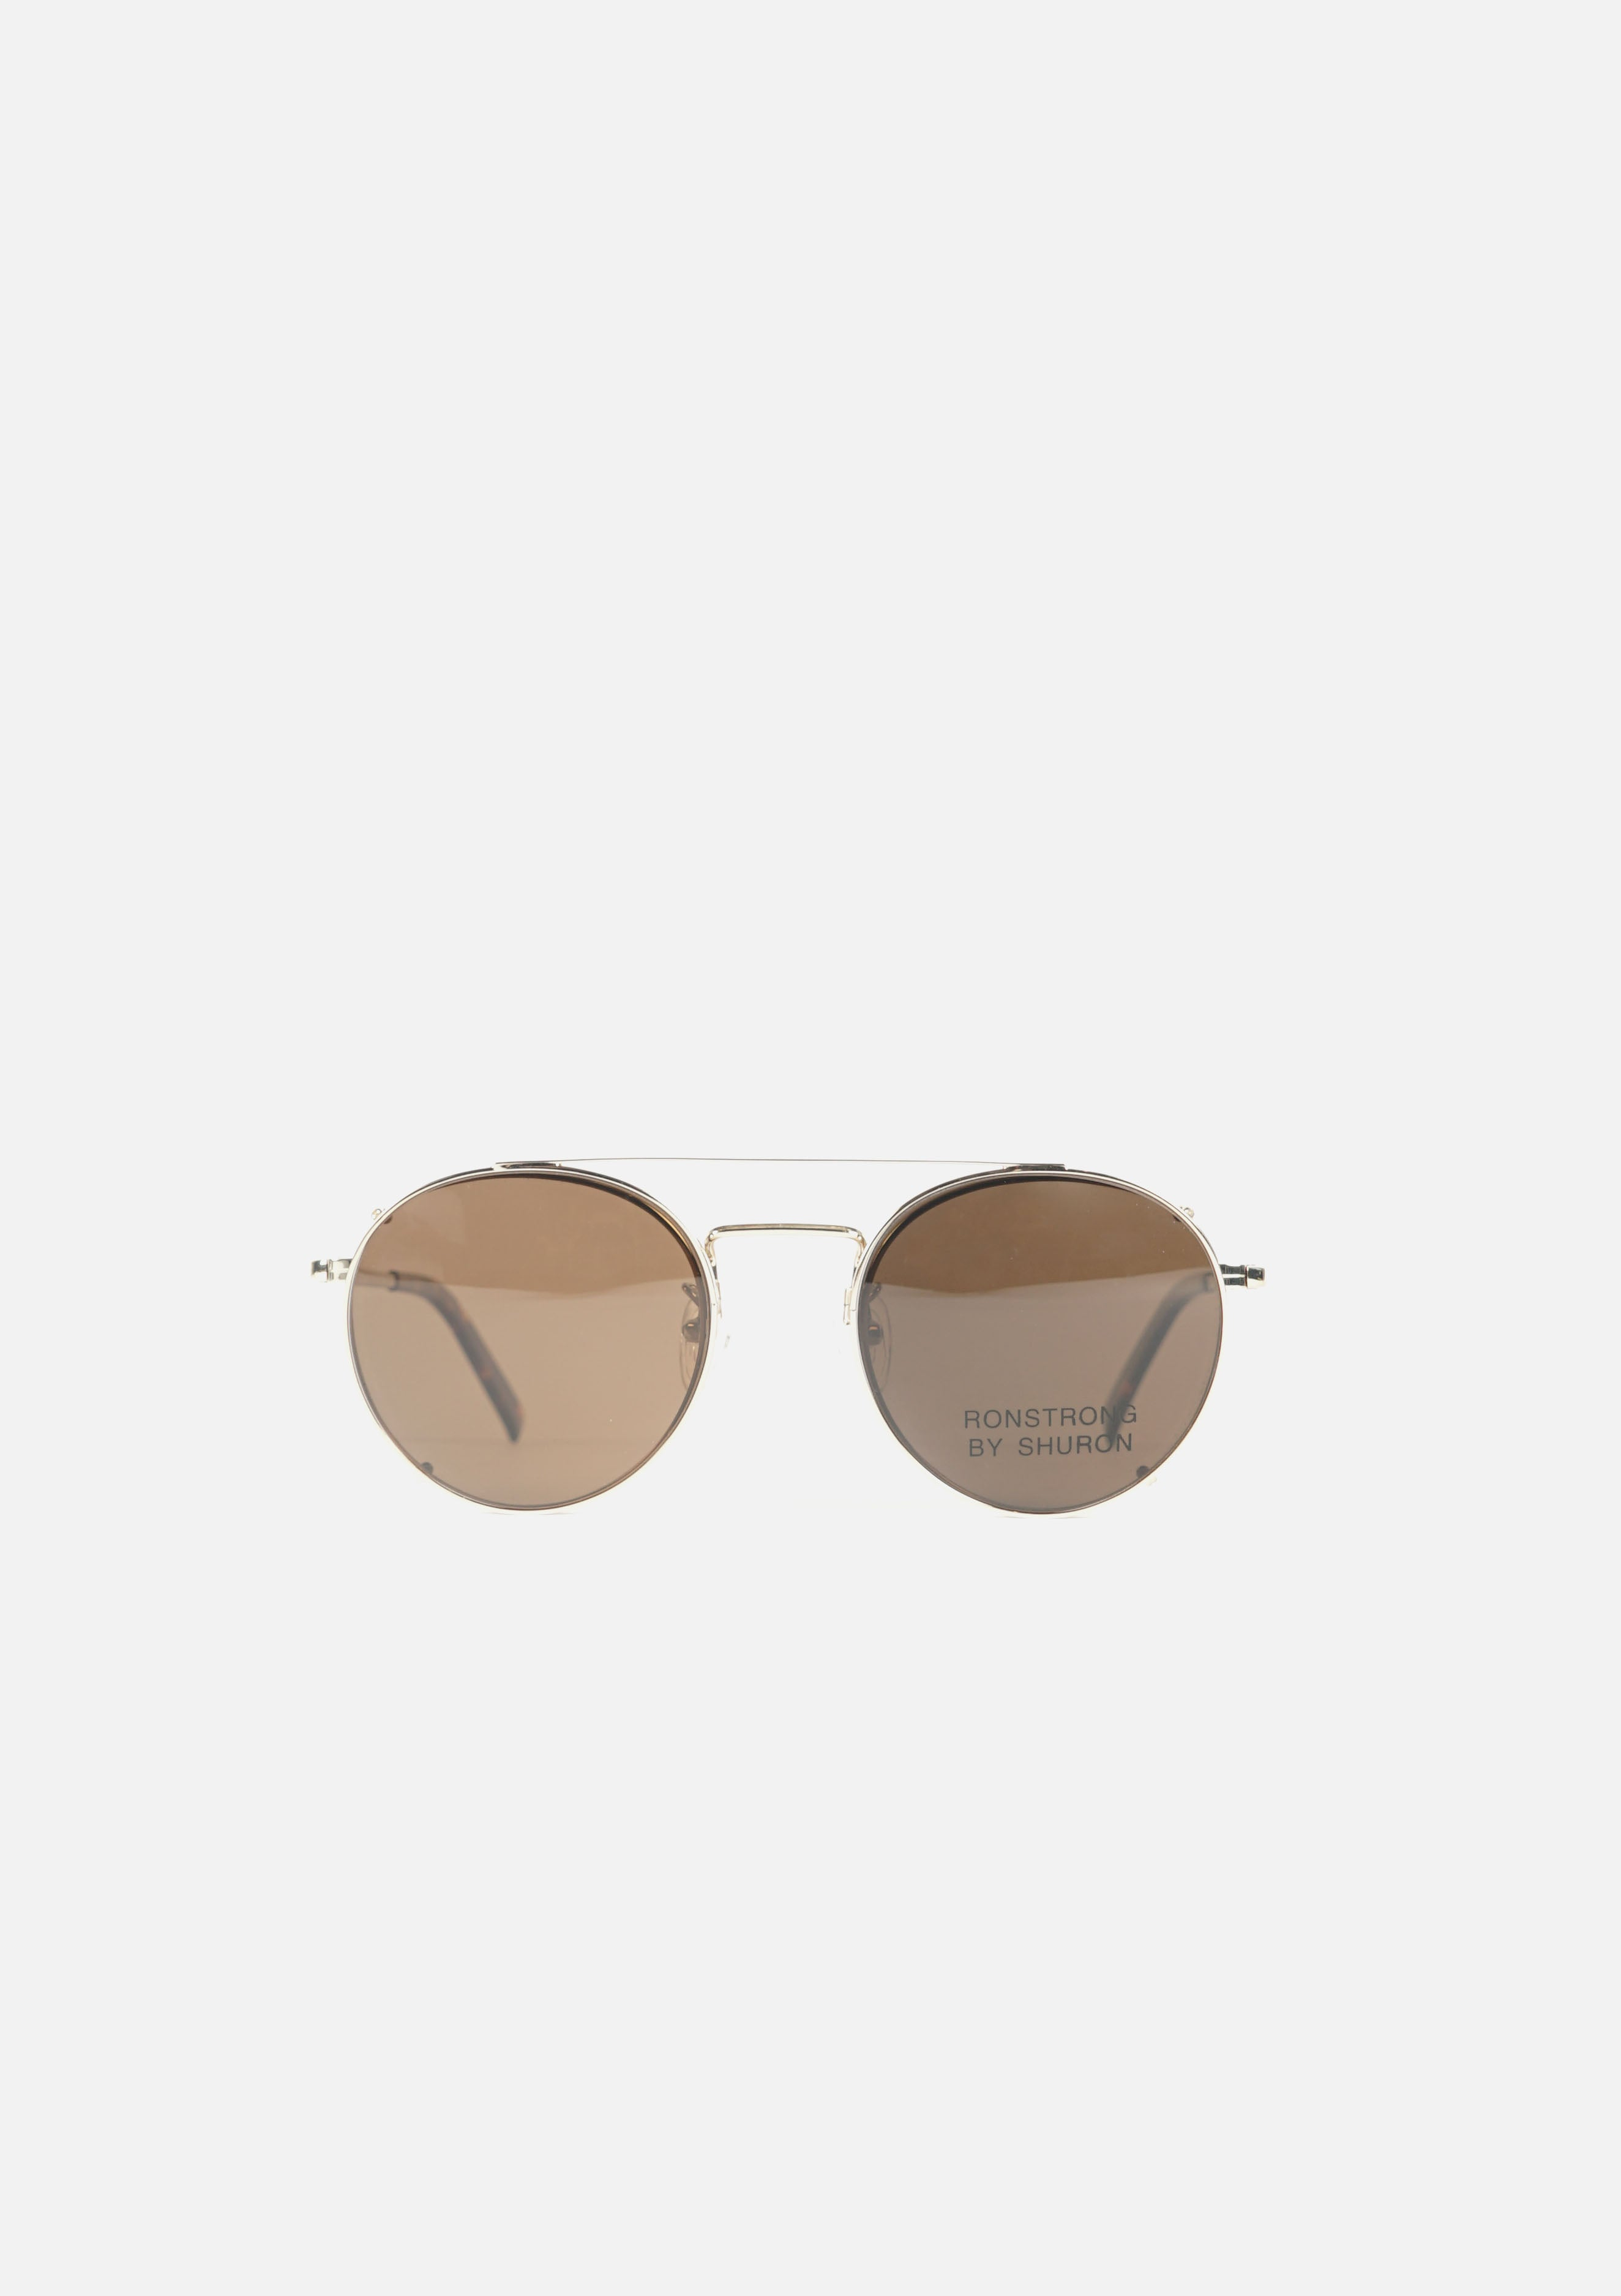 RONSTRONG Clip on Sunglasses  Gold Chassis